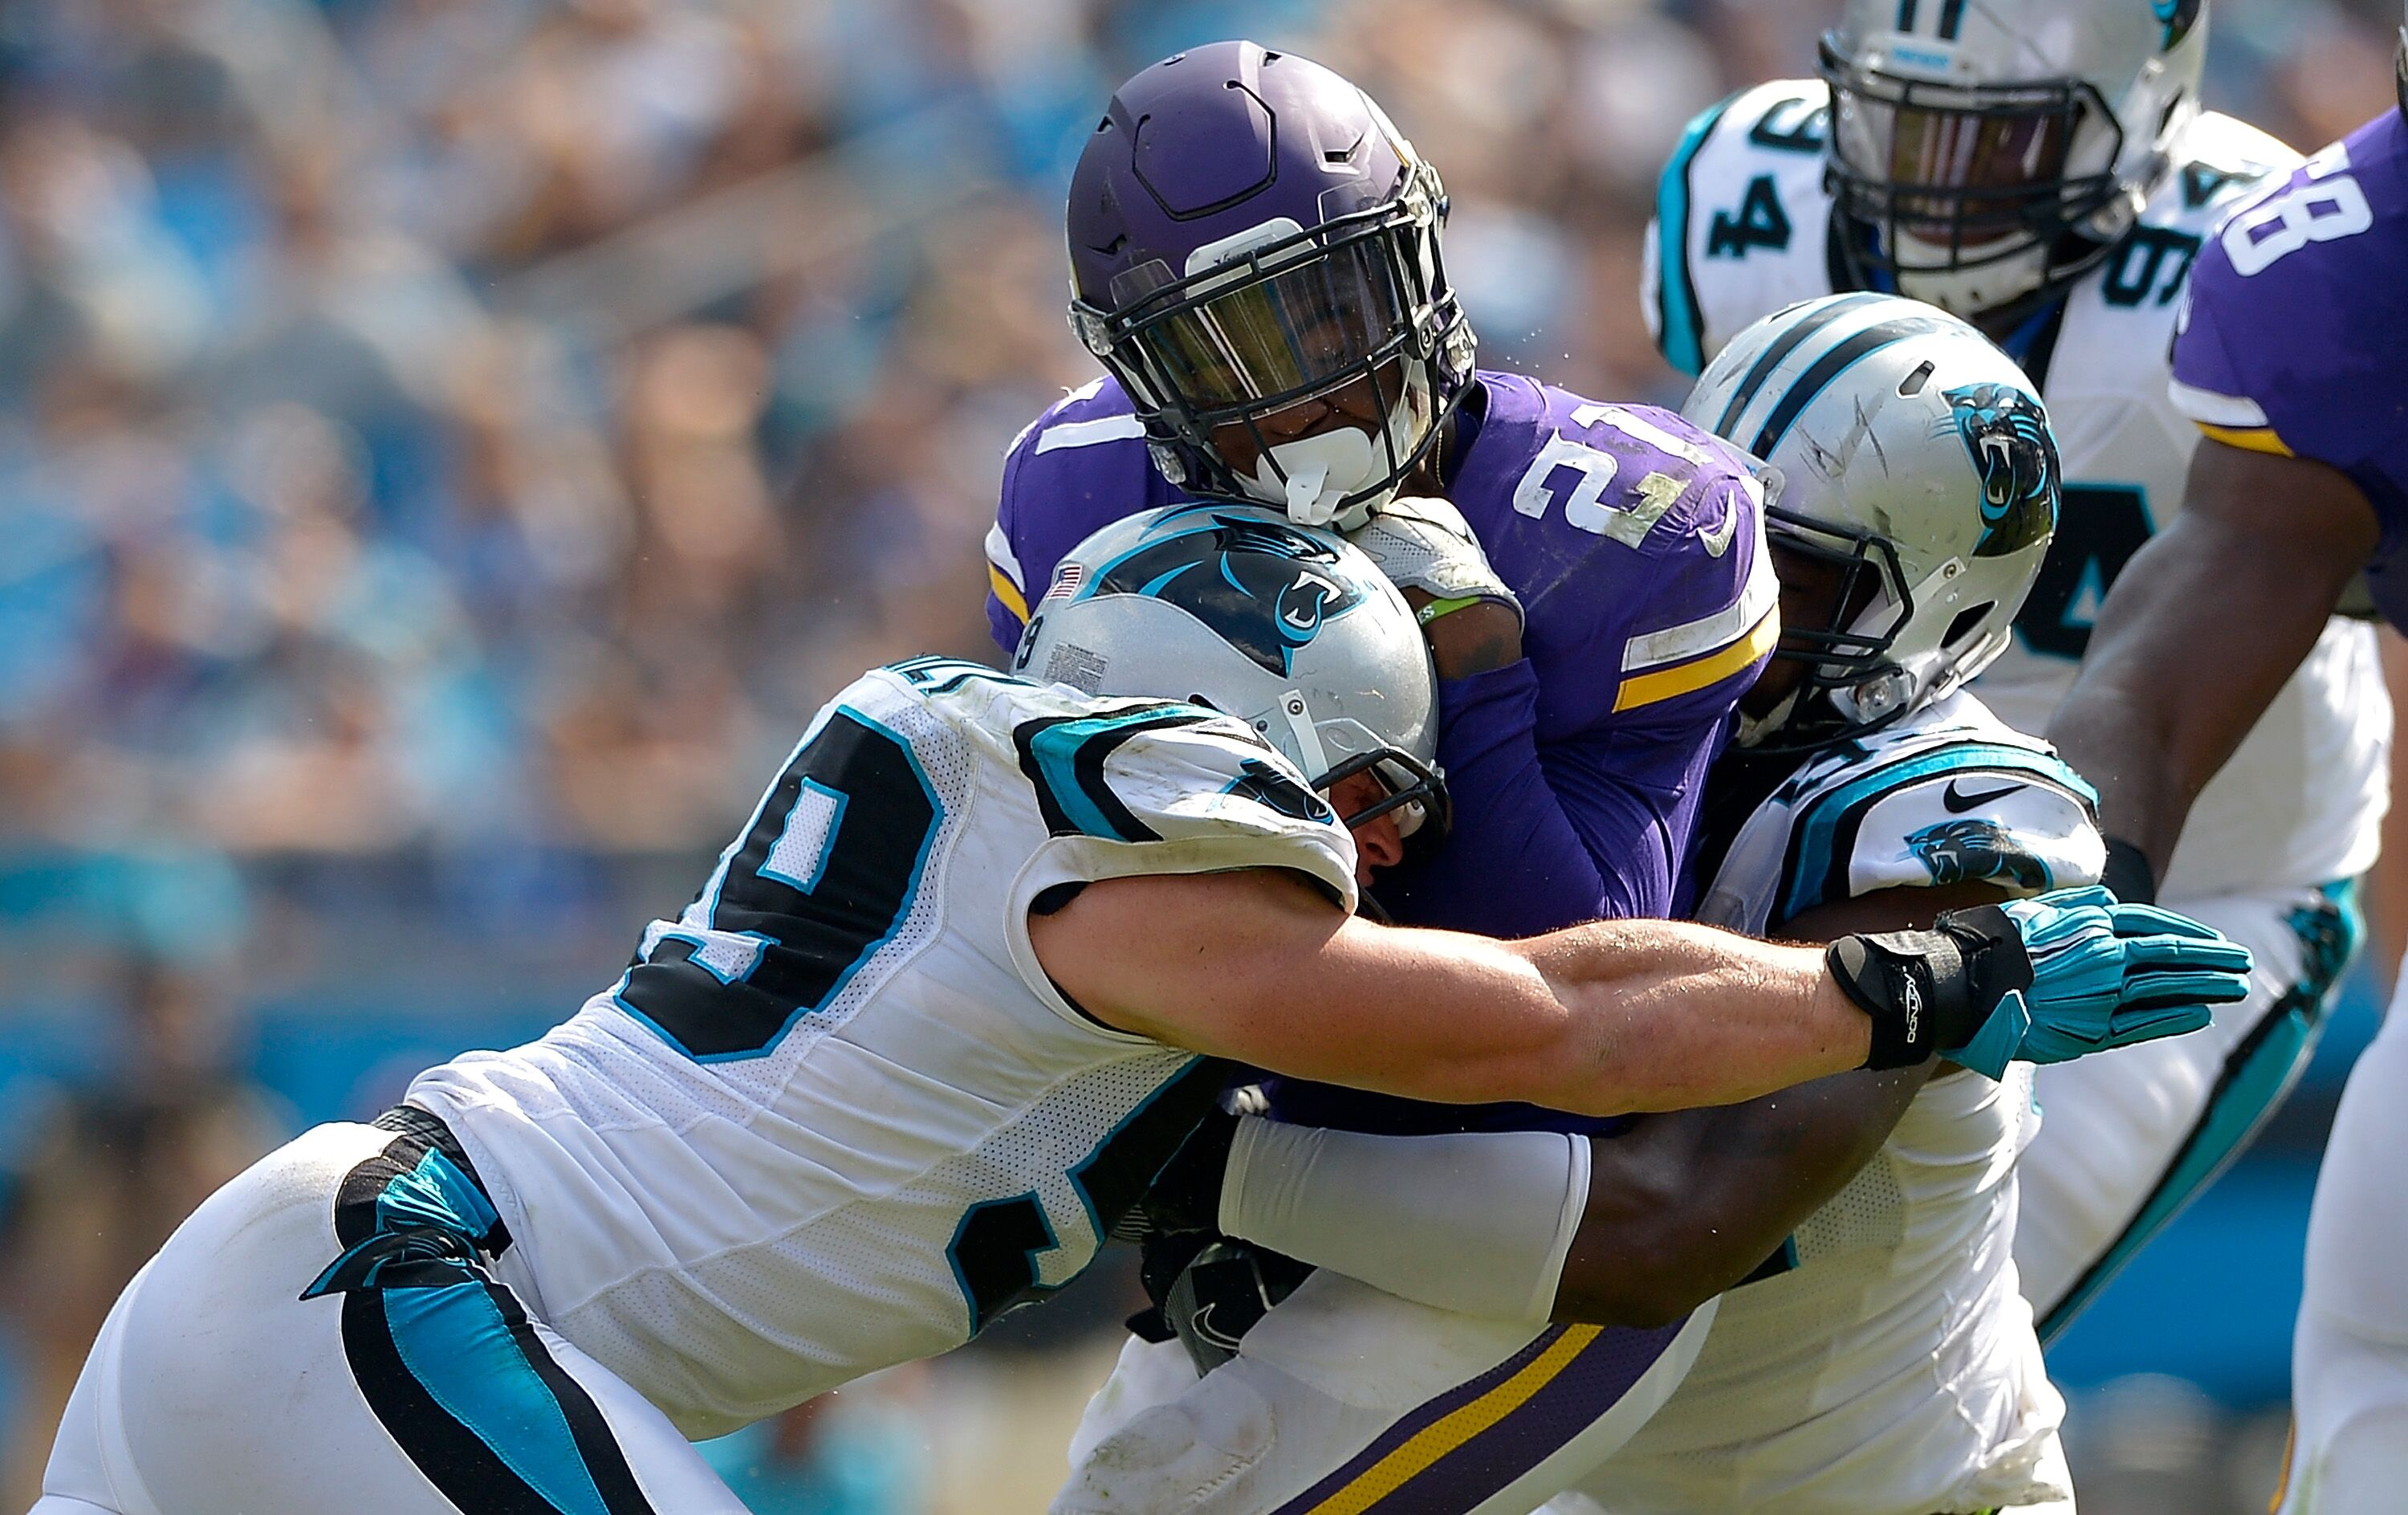 610399444-minnesota-vikings-v-carolina-panthers.jpg